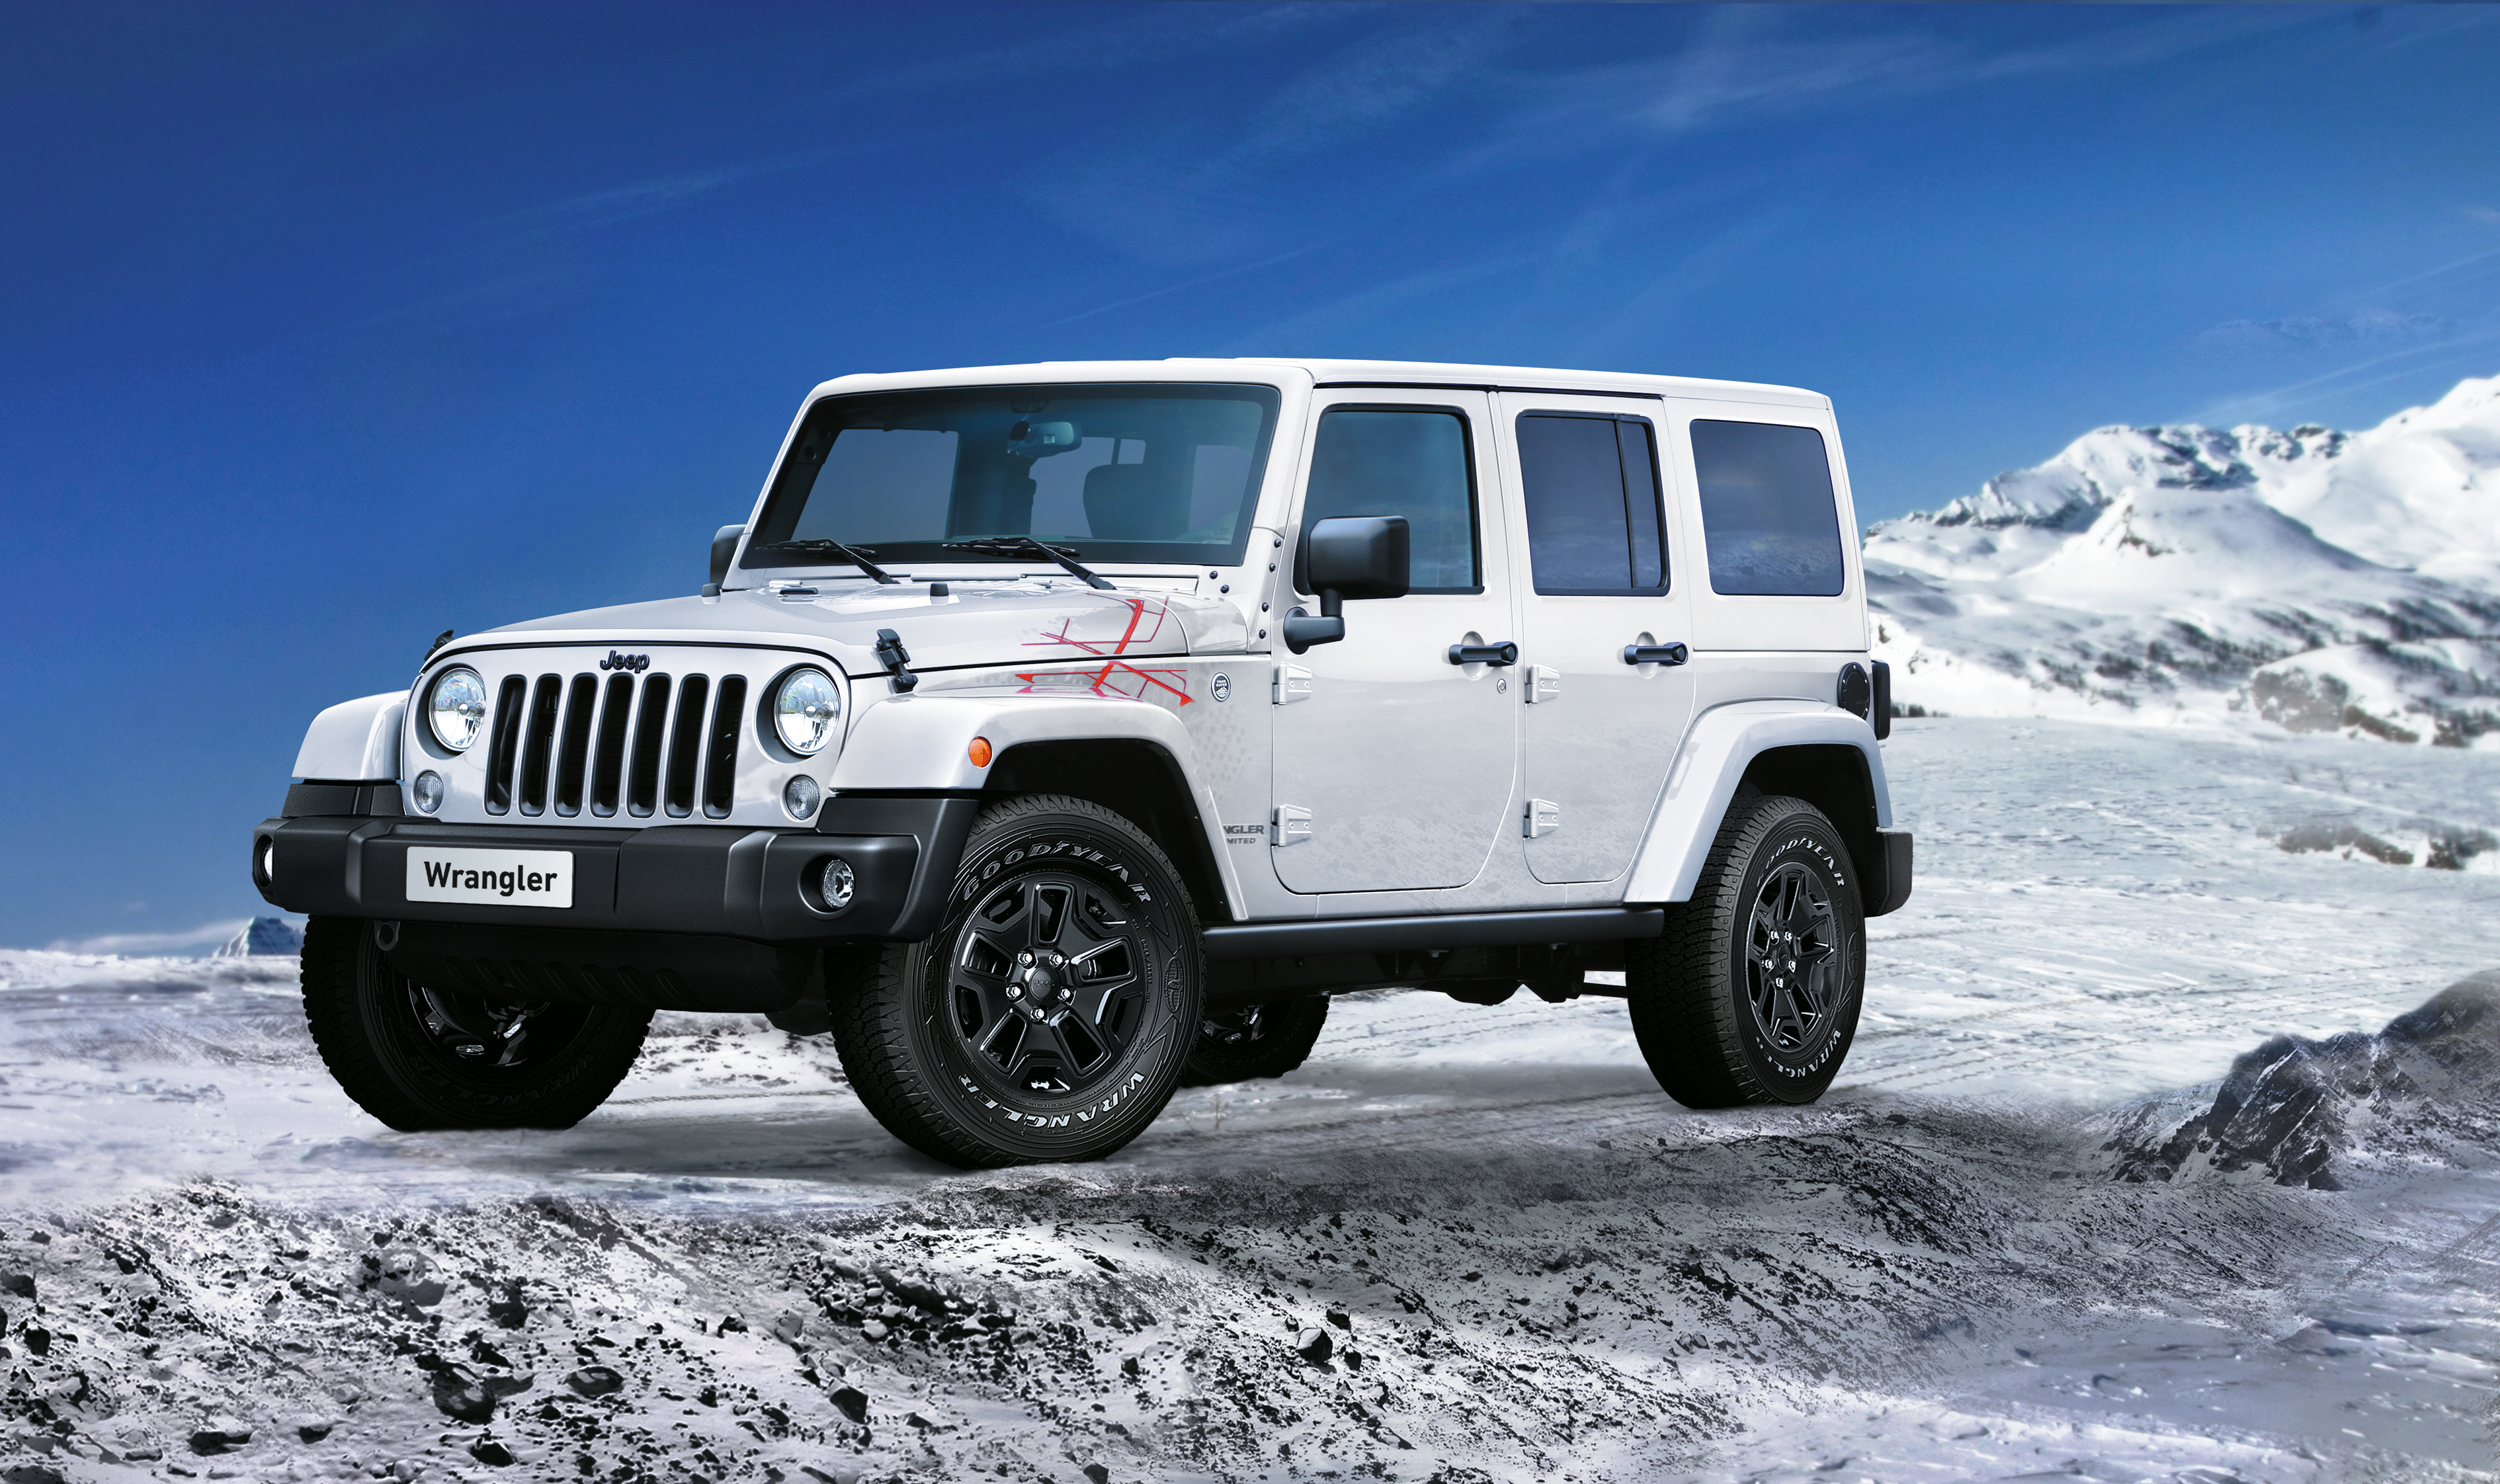 jeep wrangler backcountry renegade et cherokee night eagle premi res s ries 2016. Black Bedroom Furniture Sets. Home Design Ideas